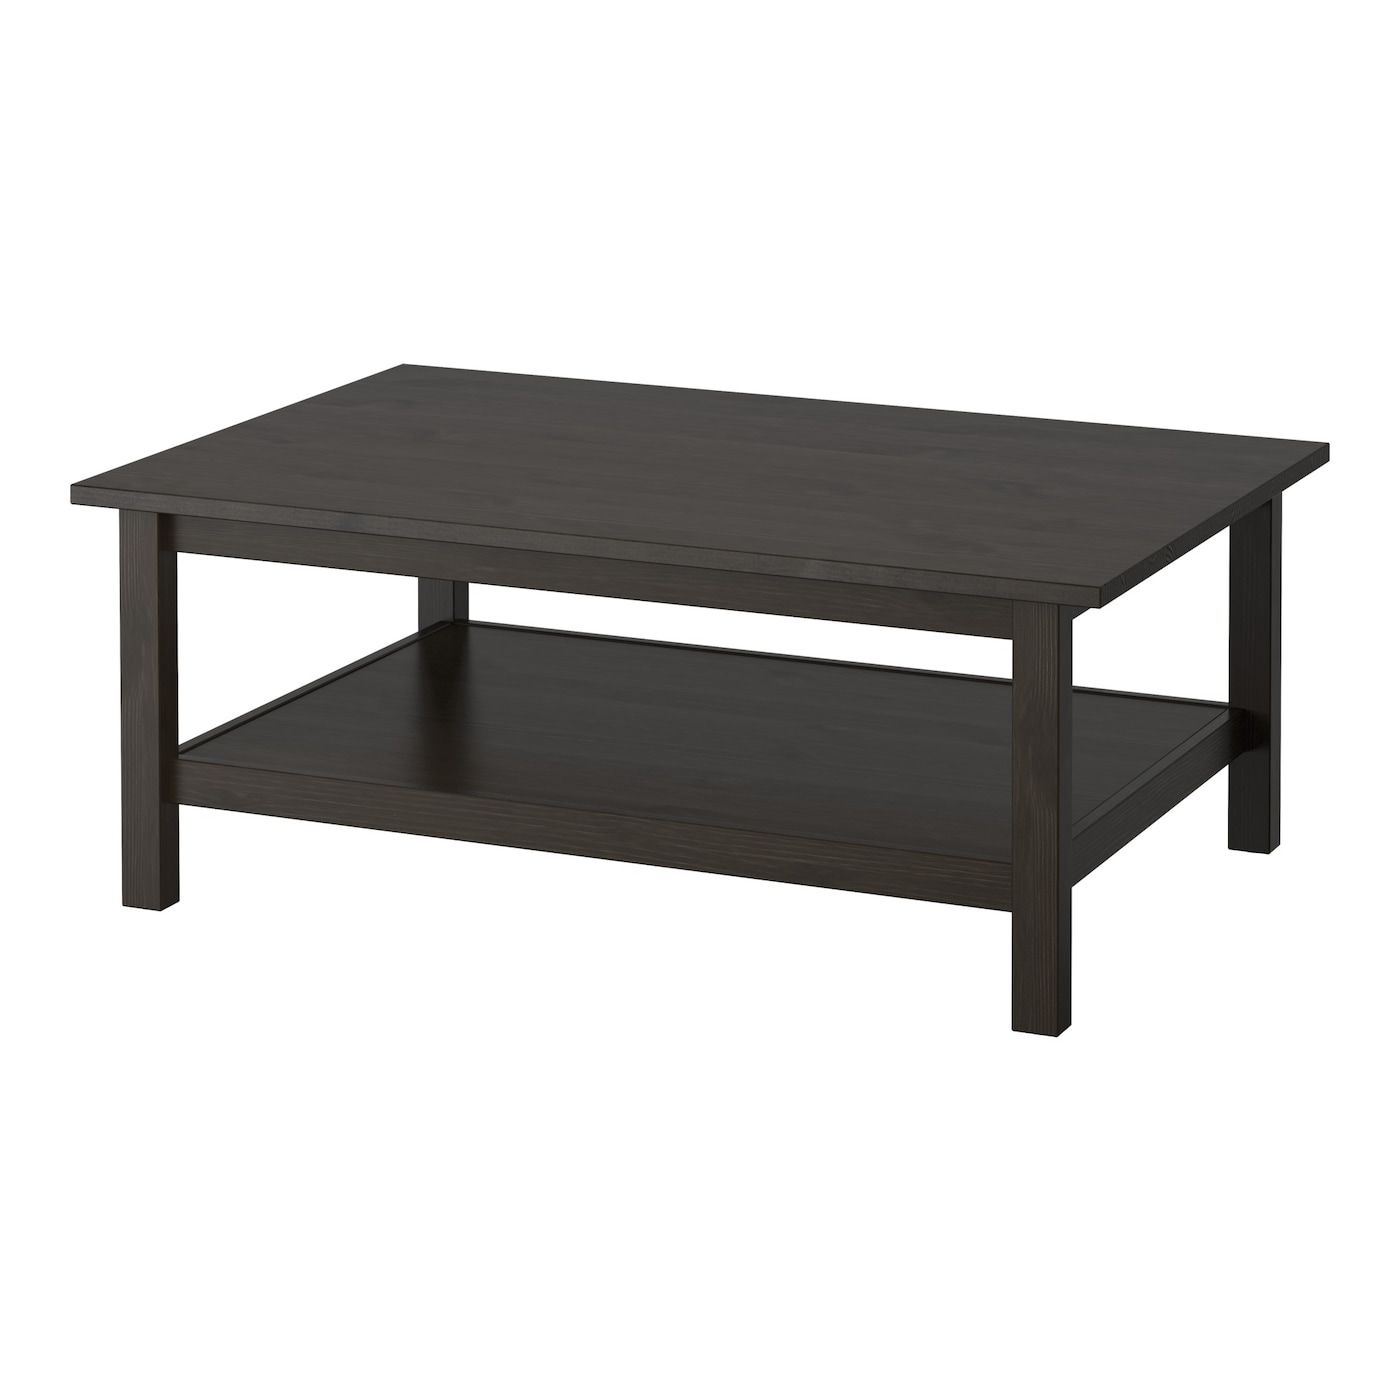 black furniture ikea. ikea hemnes coffee table solid wood has a natural feel black furniture ikea